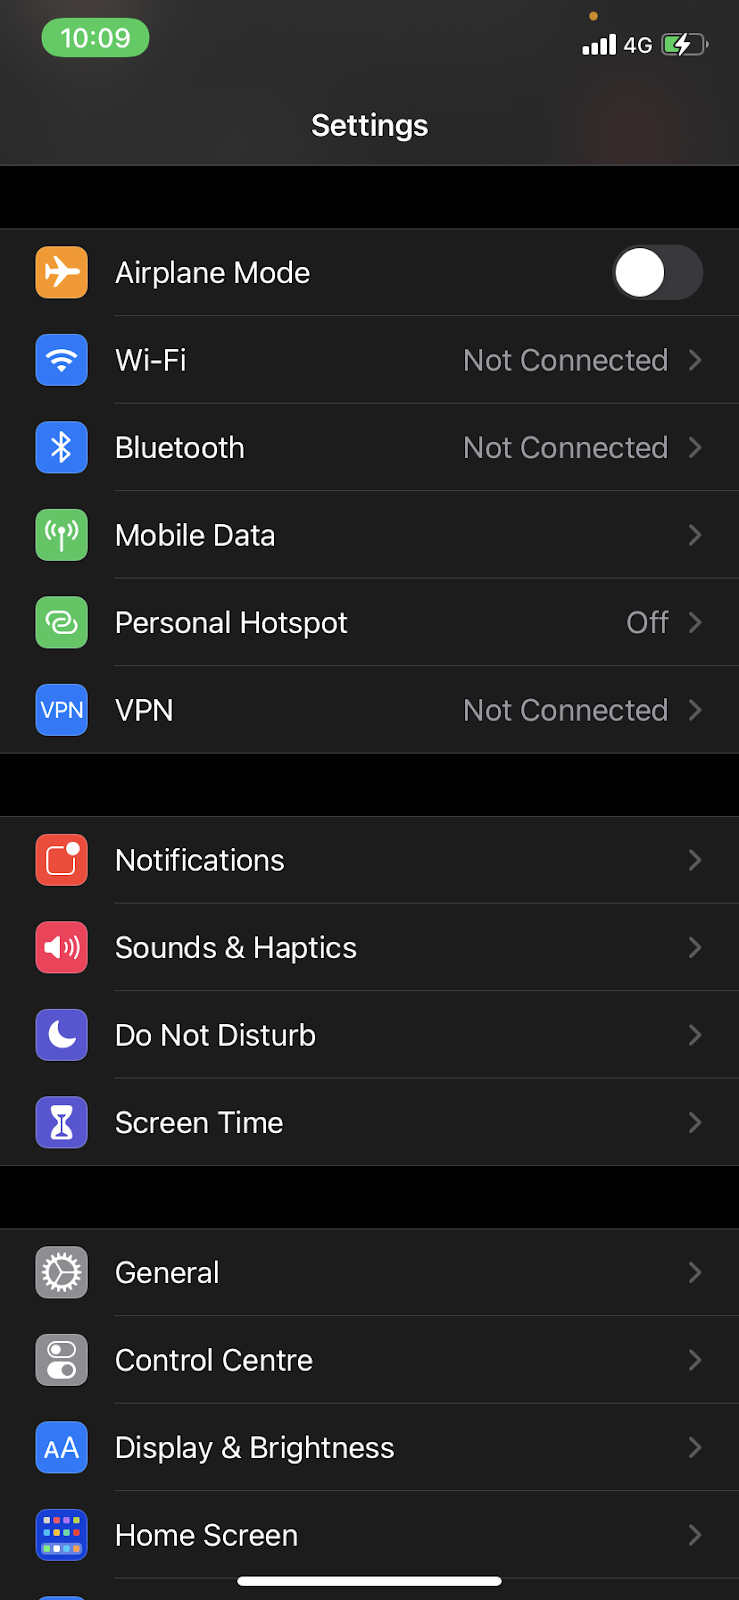 The General option in the iPhone settings